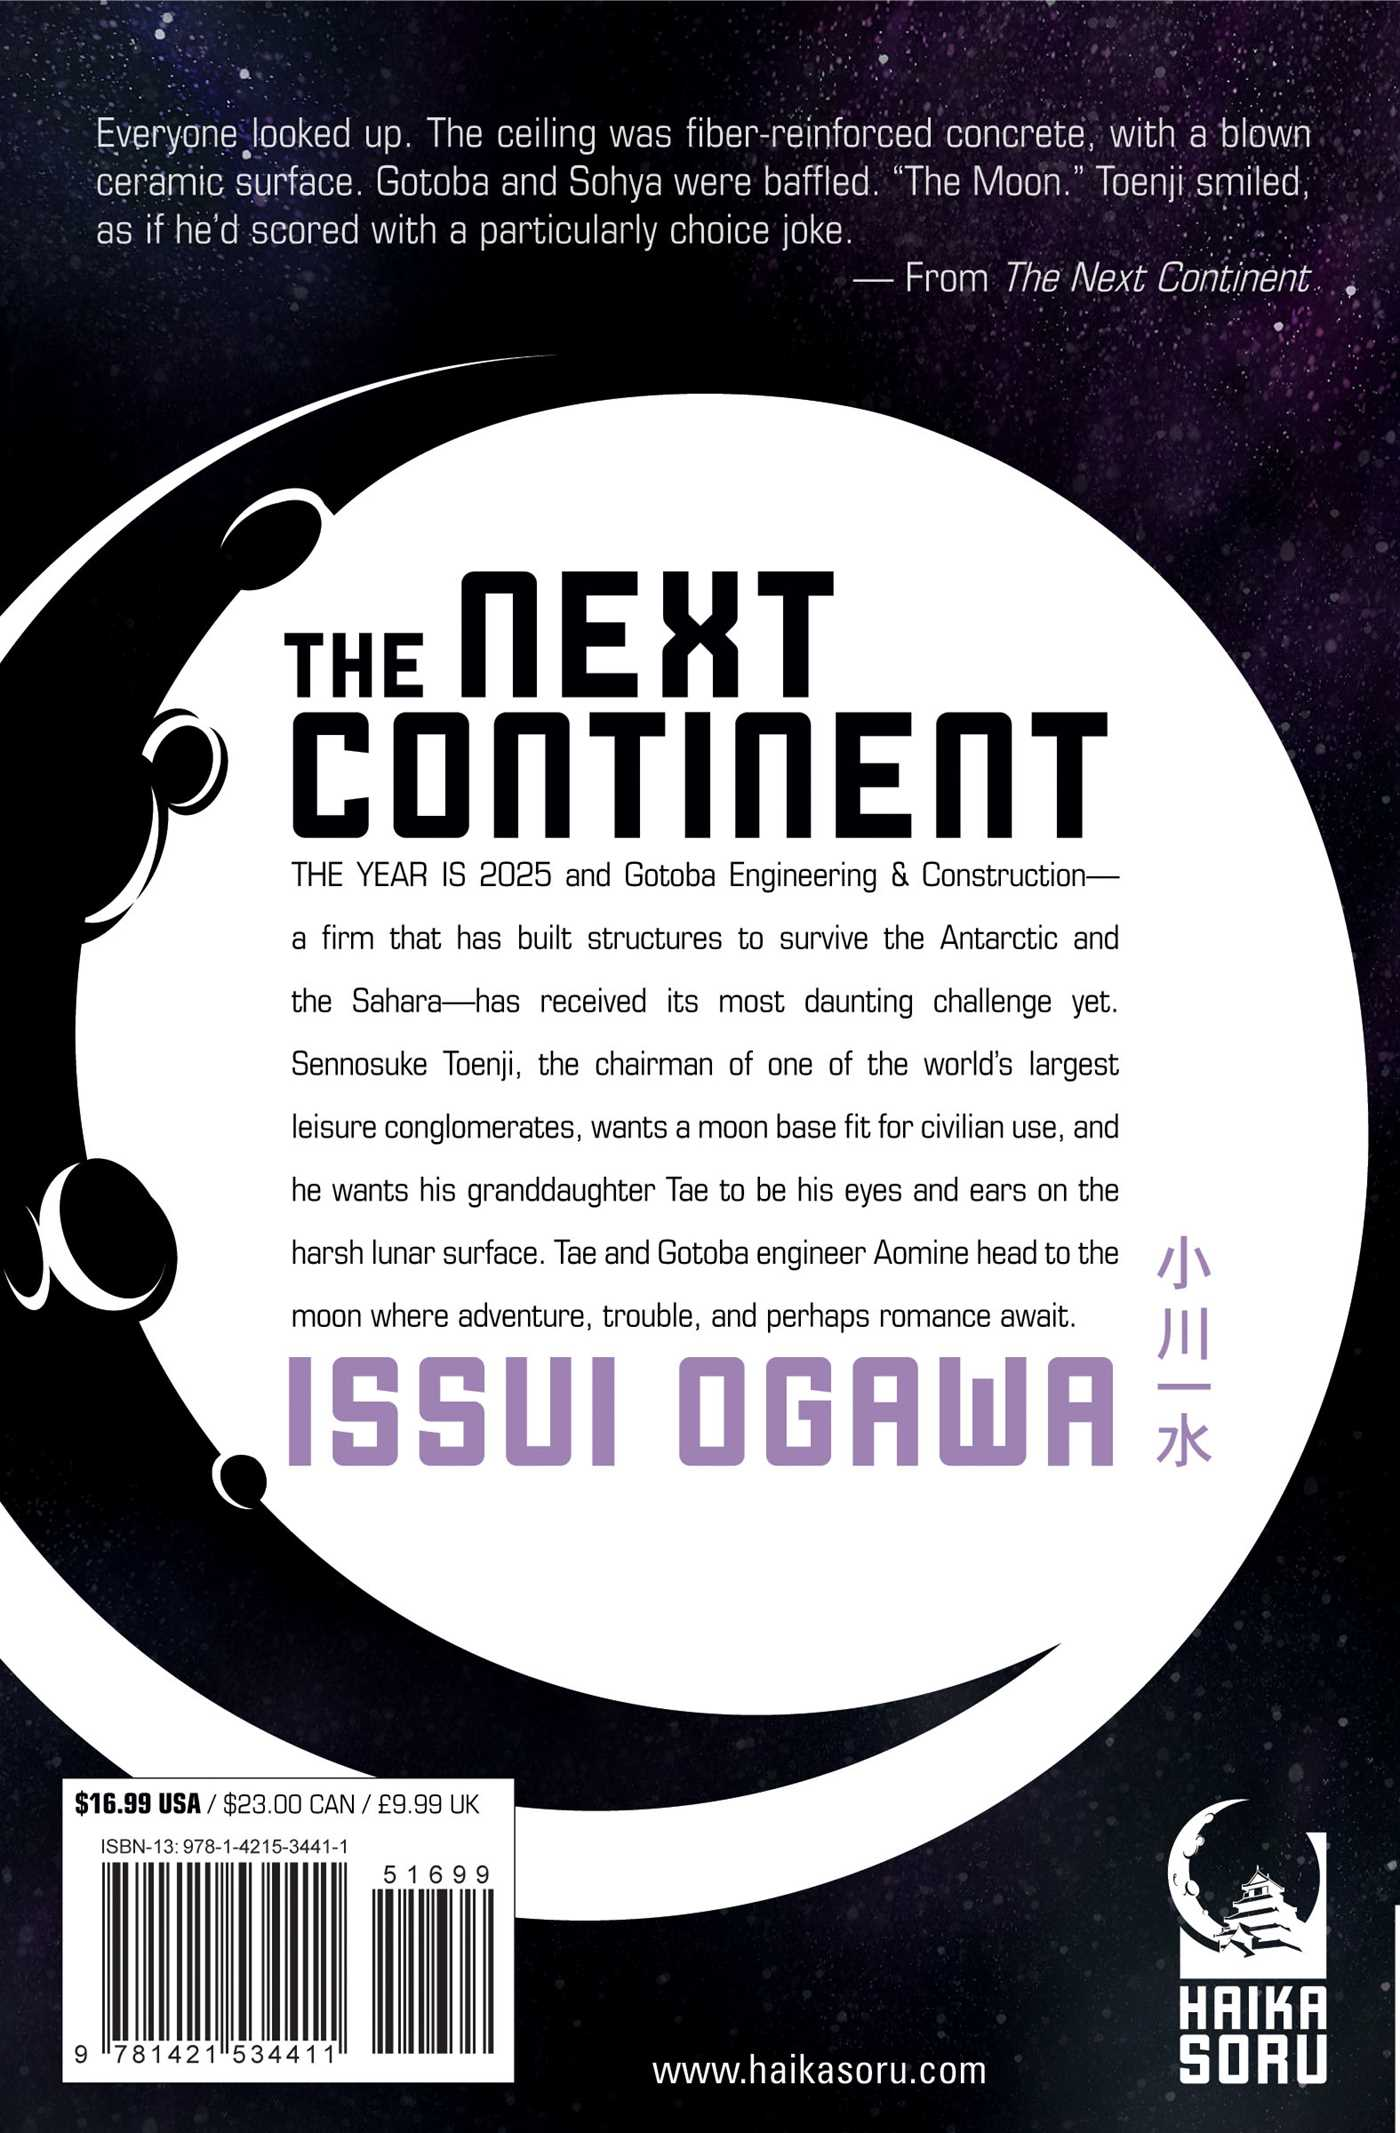 The-next-continent-novel-9781421534411_hr-back